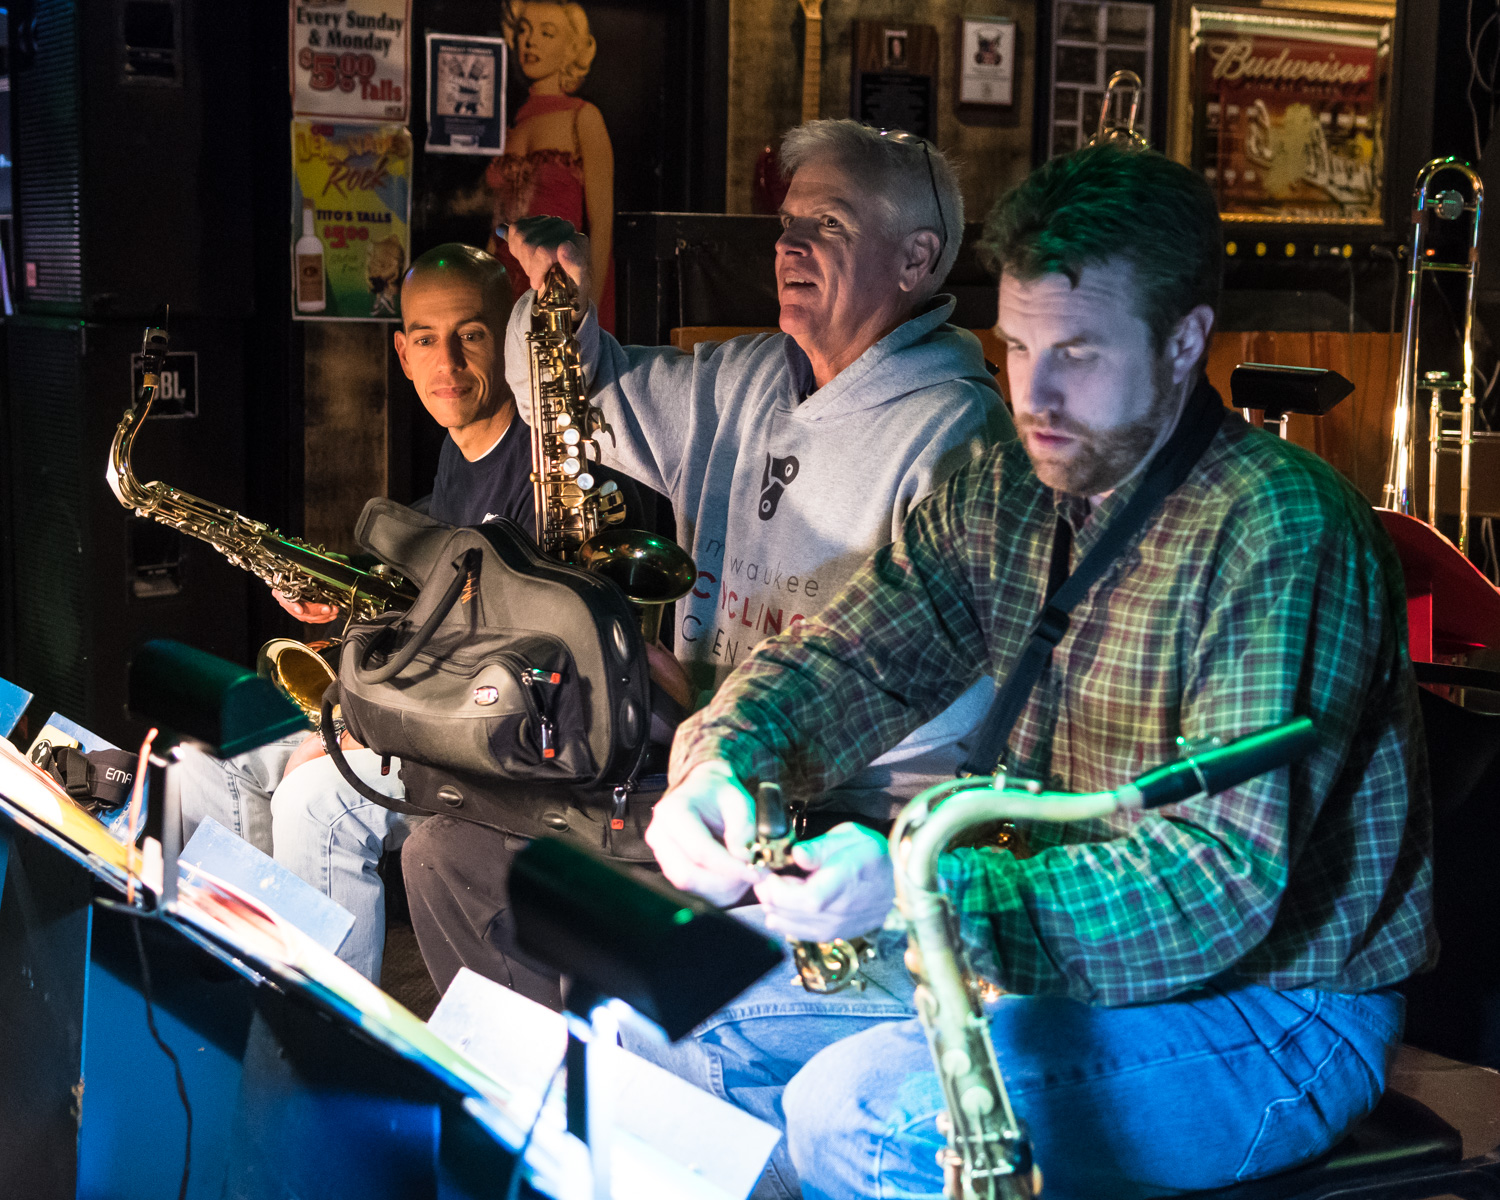 Saxophonists Jordan Gardina, from left, Steve Jacob, and Garrett Kornman of The Parkside Reunion Big Band's performance Tuesday night. The band performs 8-10 p.m. on the first and third Tuesdays of every month at McAuliffe's Pub.